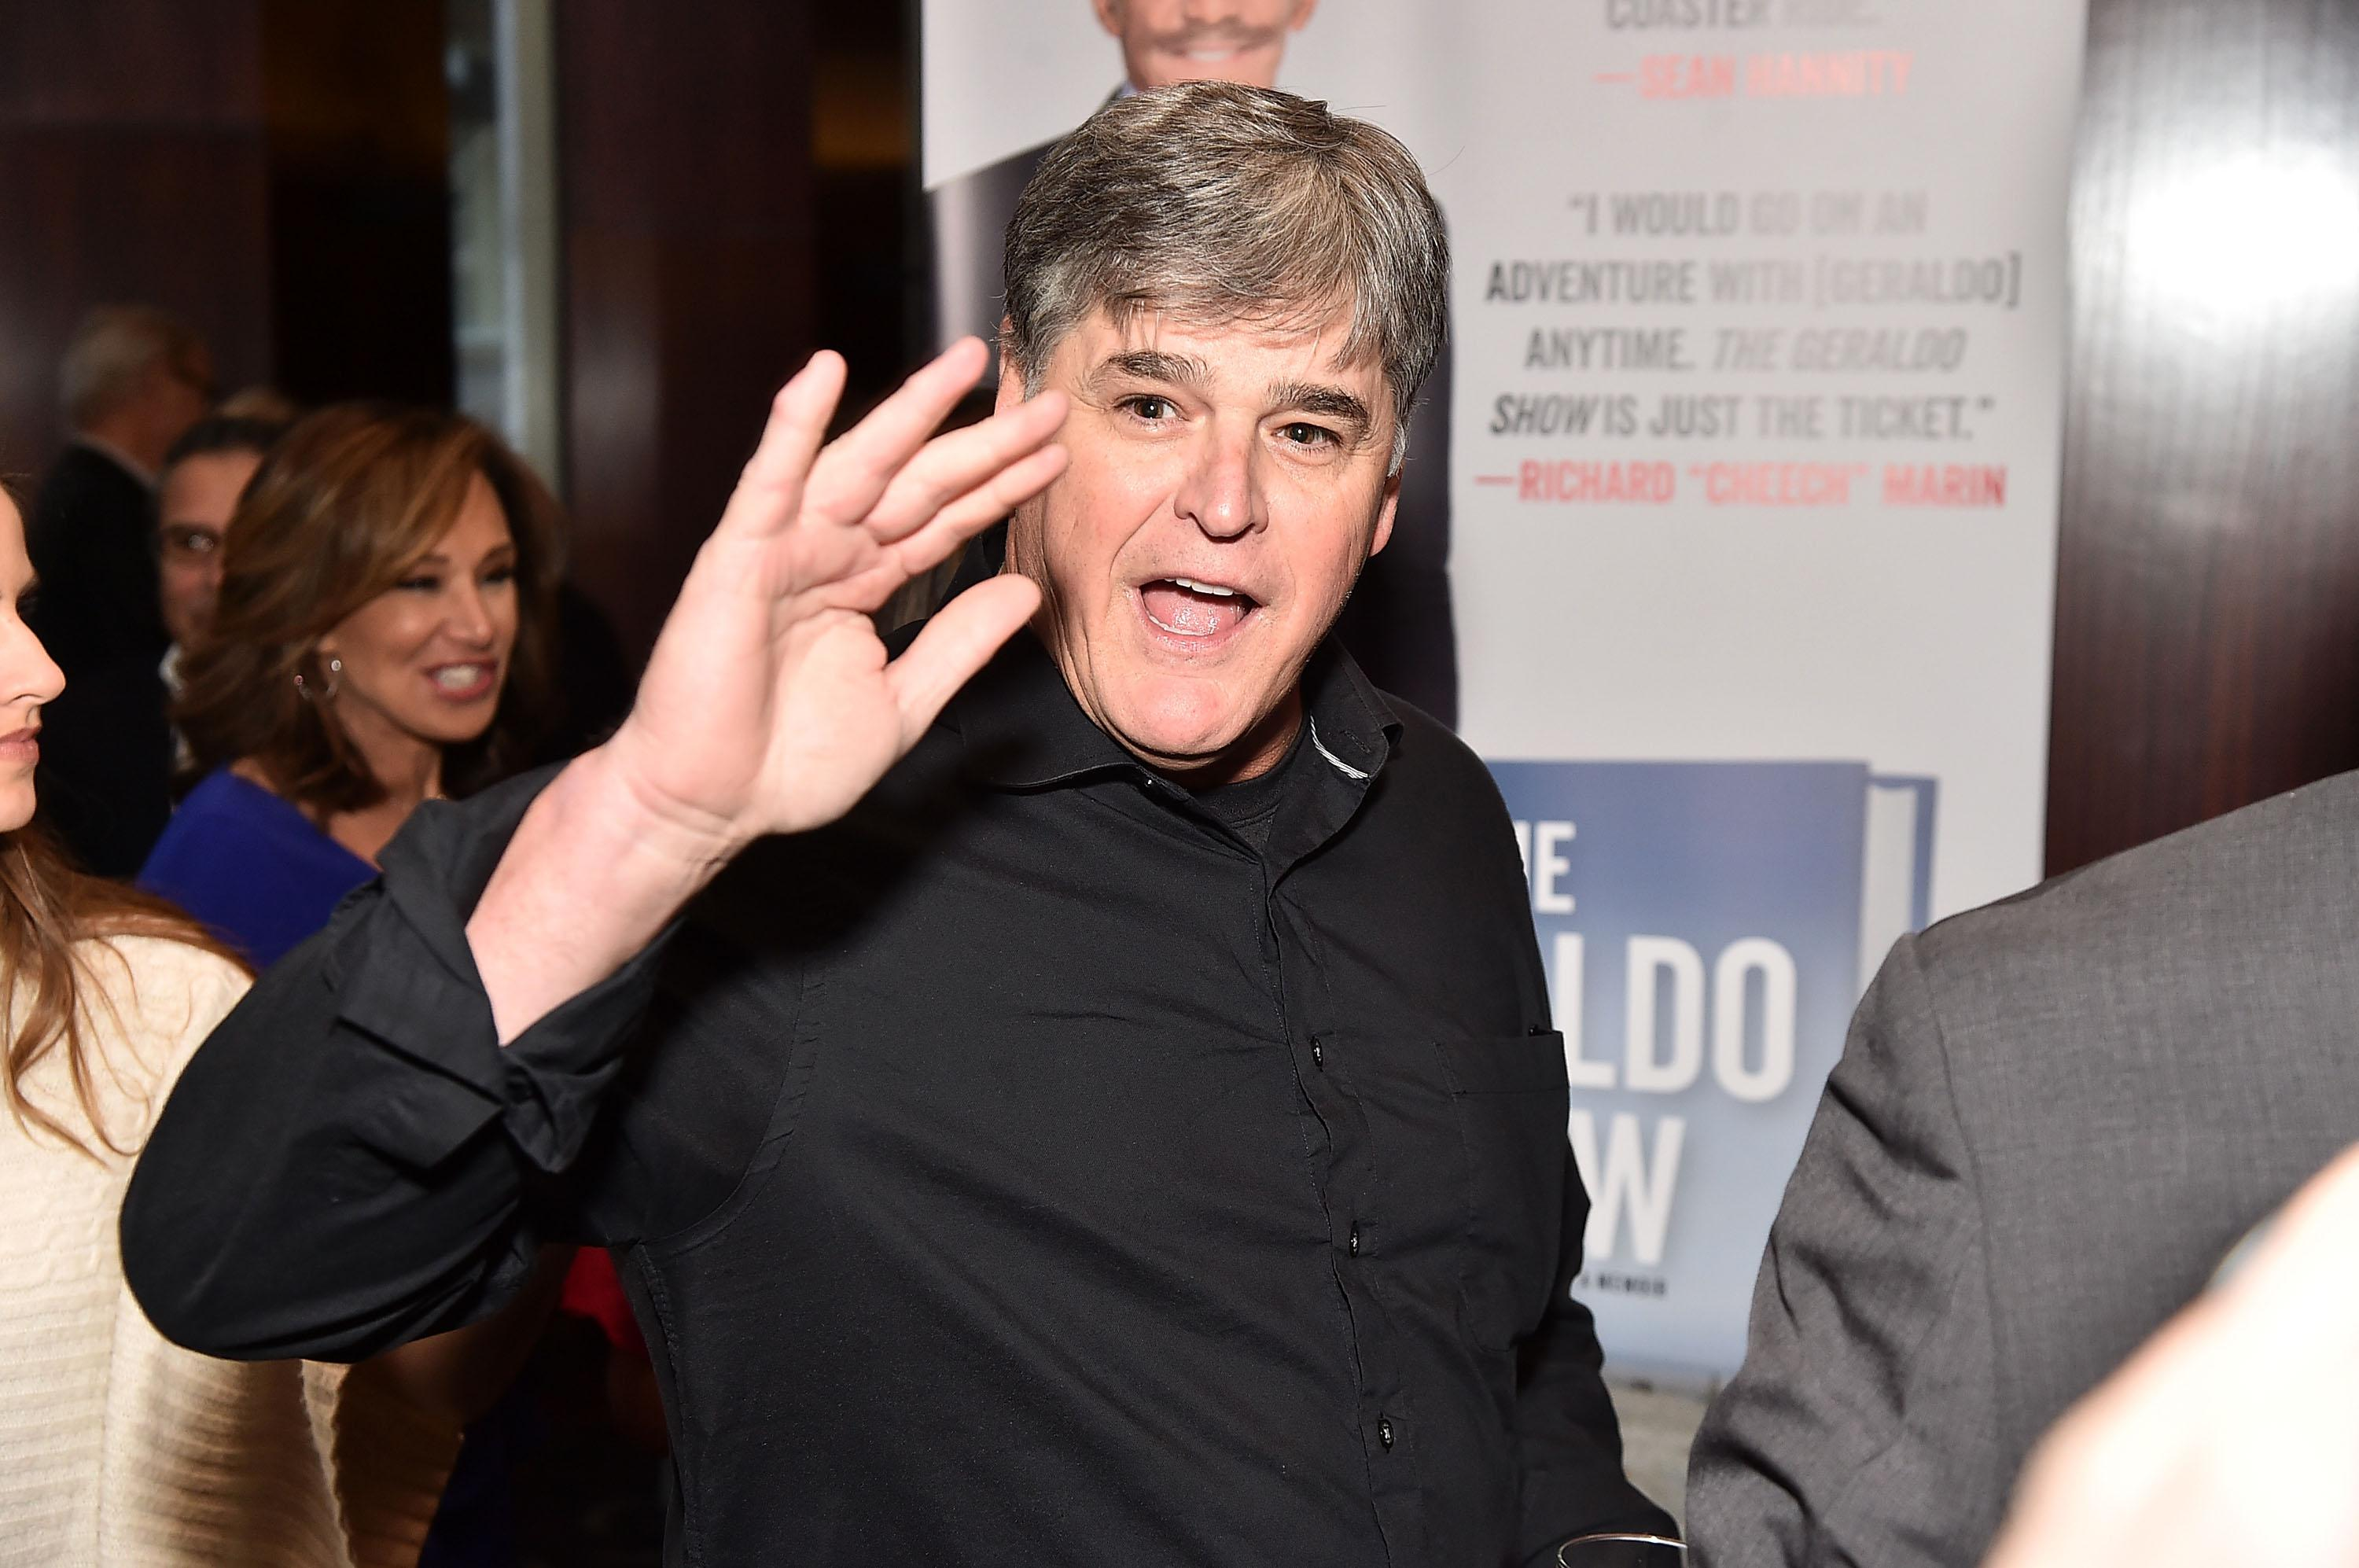 Sean Hannity waving.